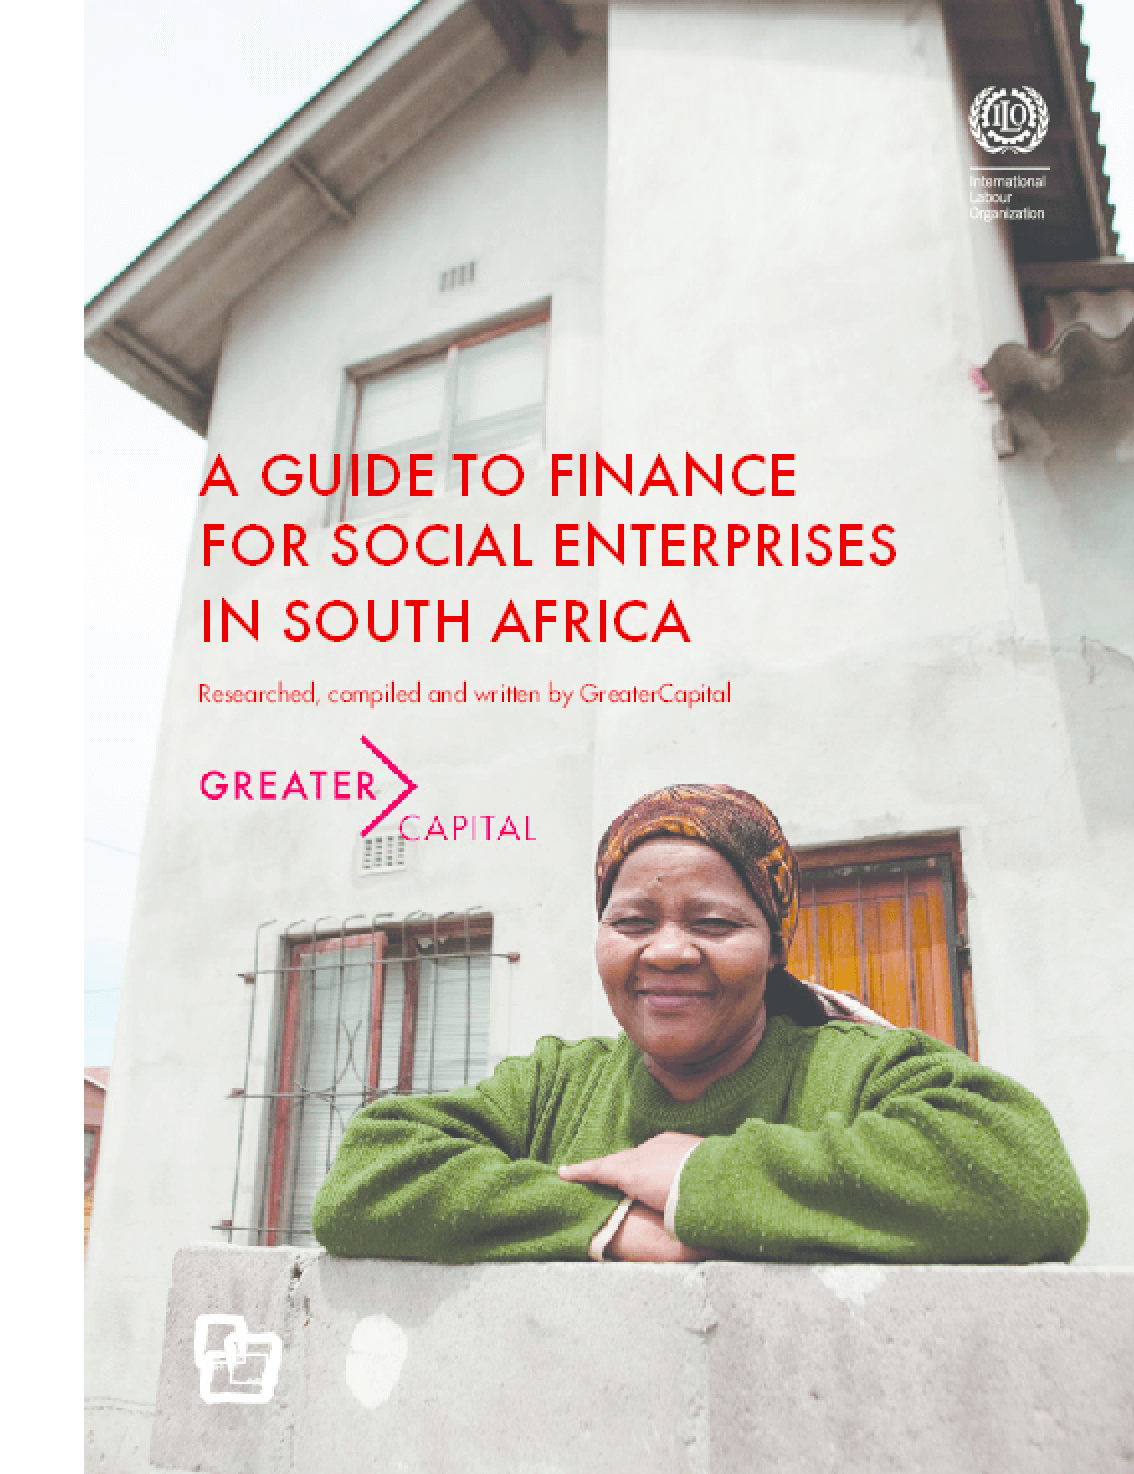 A guide to finance for Social Enterprises in South Africa